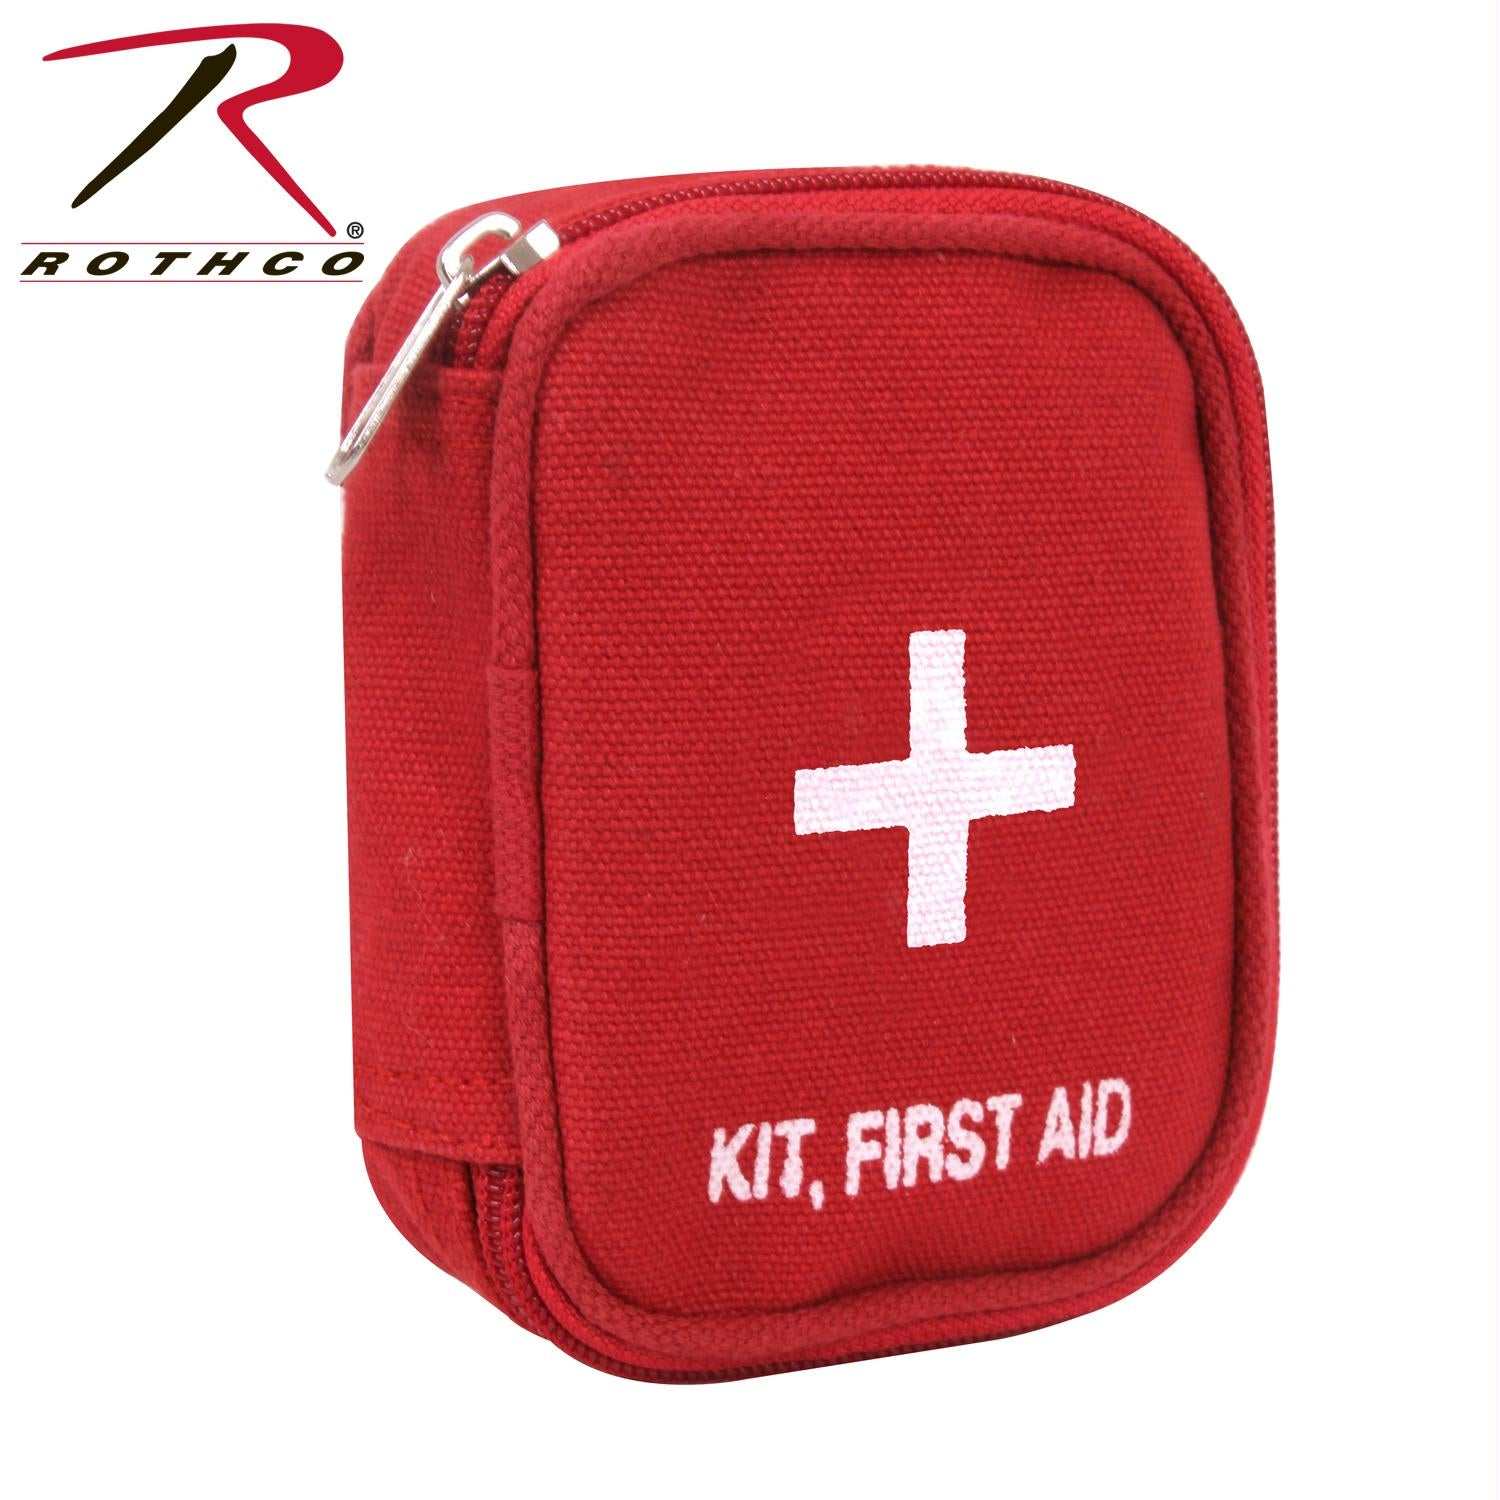 Rothco Military Zipper First Aid Kit Pouch - Red